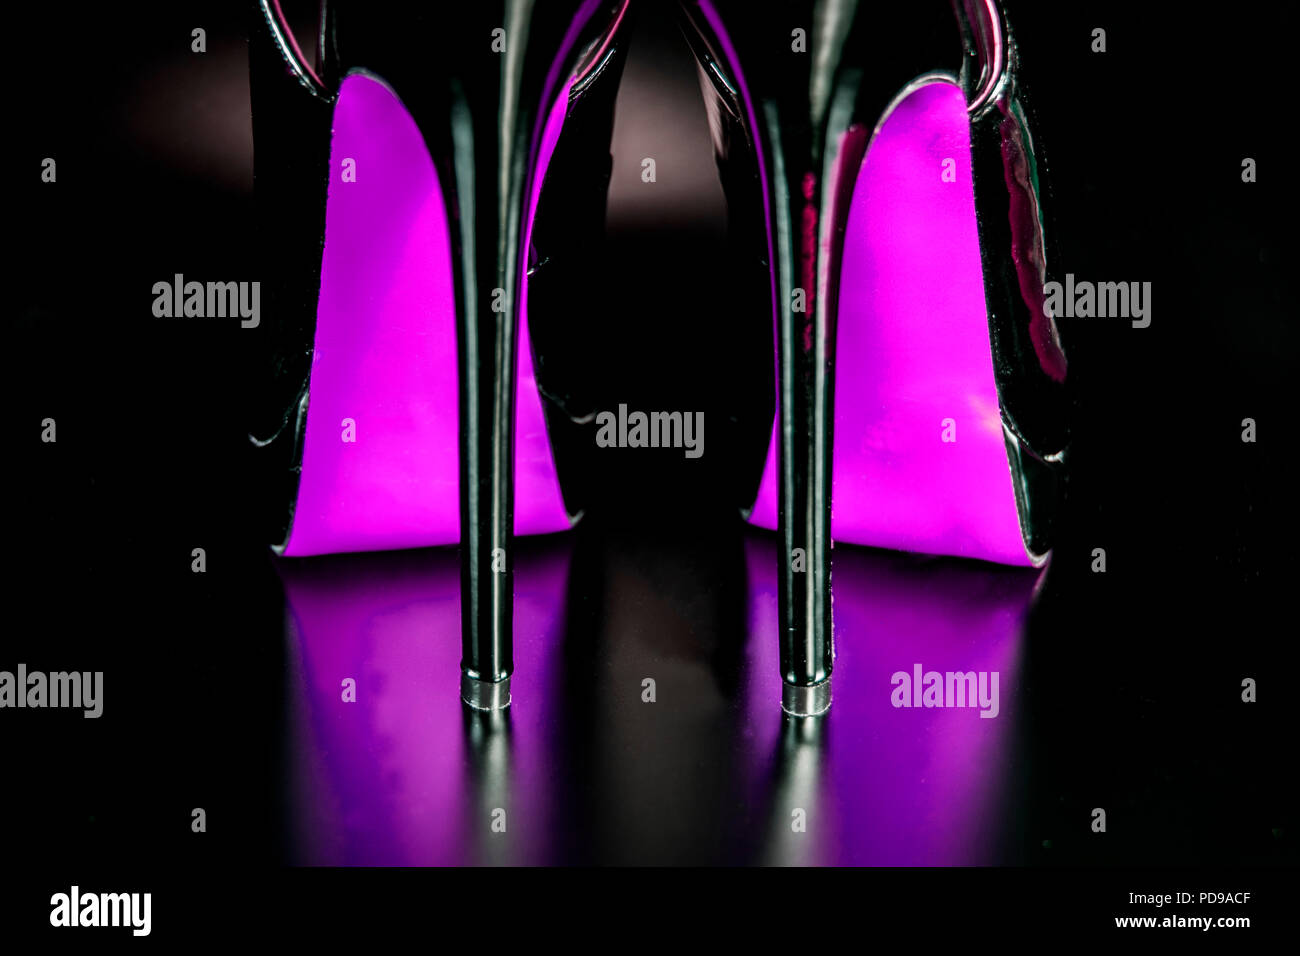 Drag Queen high heel shoes. Dancer performance fancy shoes. Shoes for the club. - Stock Image